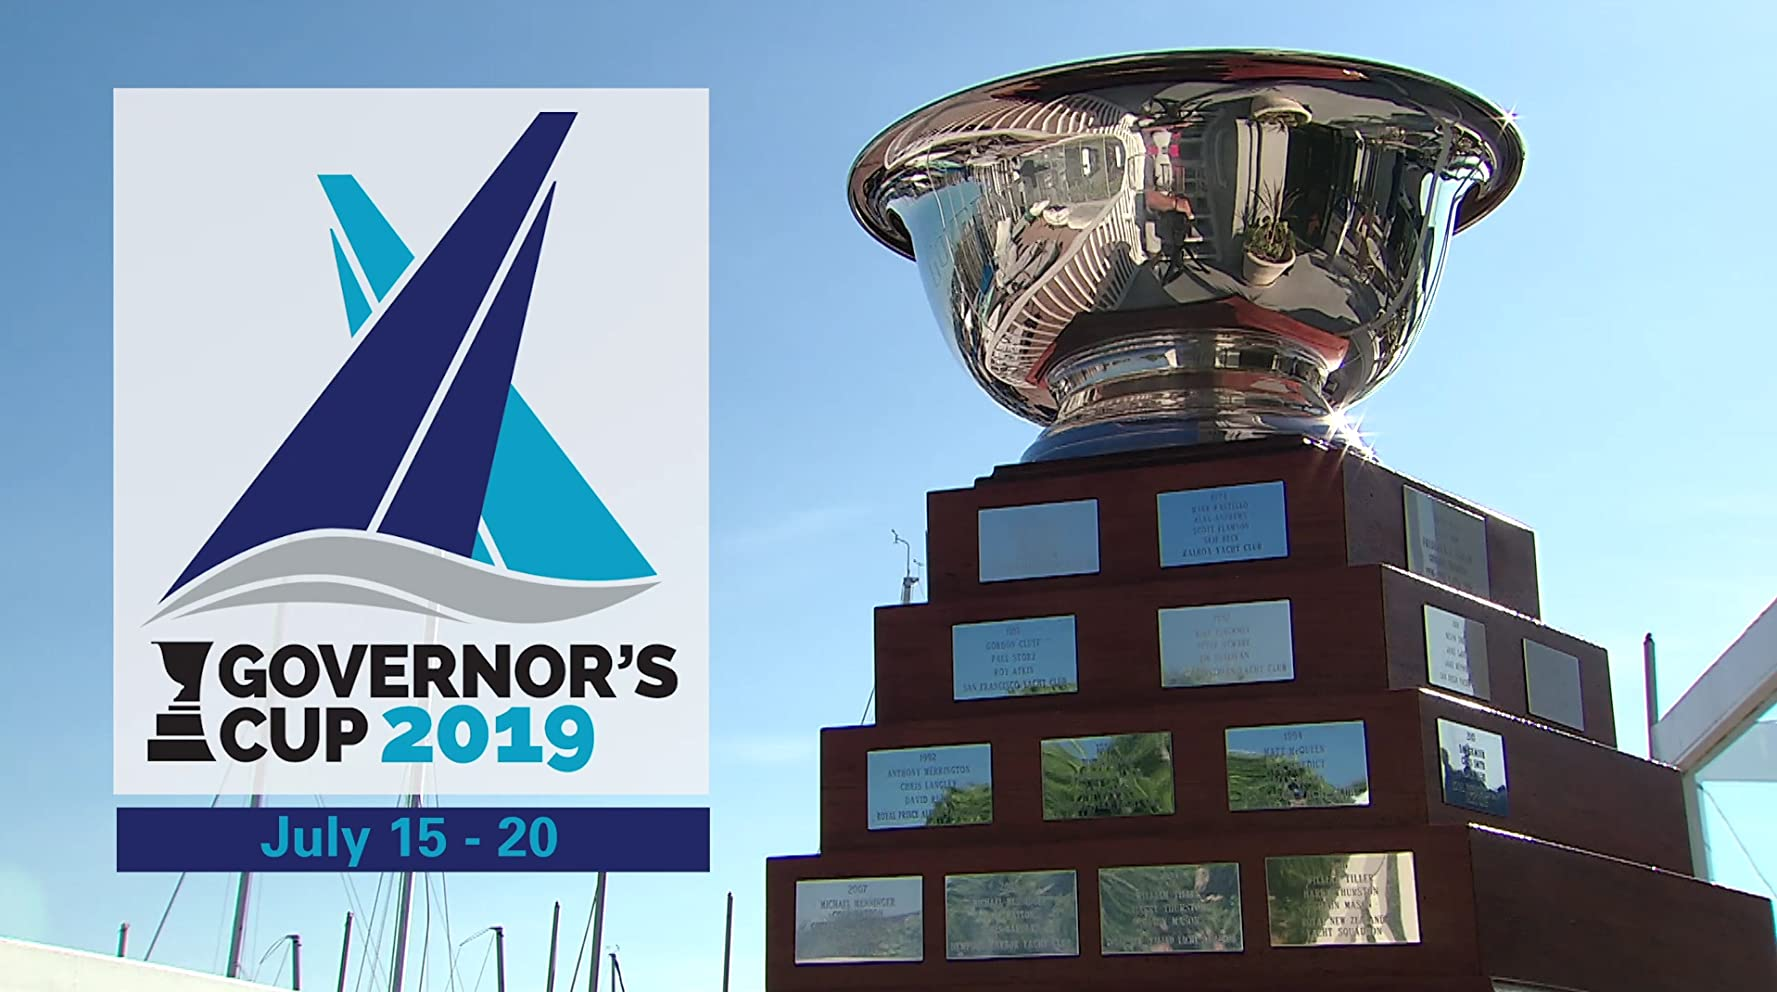 Balboa Yacht Club presents the 53rd annual Governor's Cup (2019)